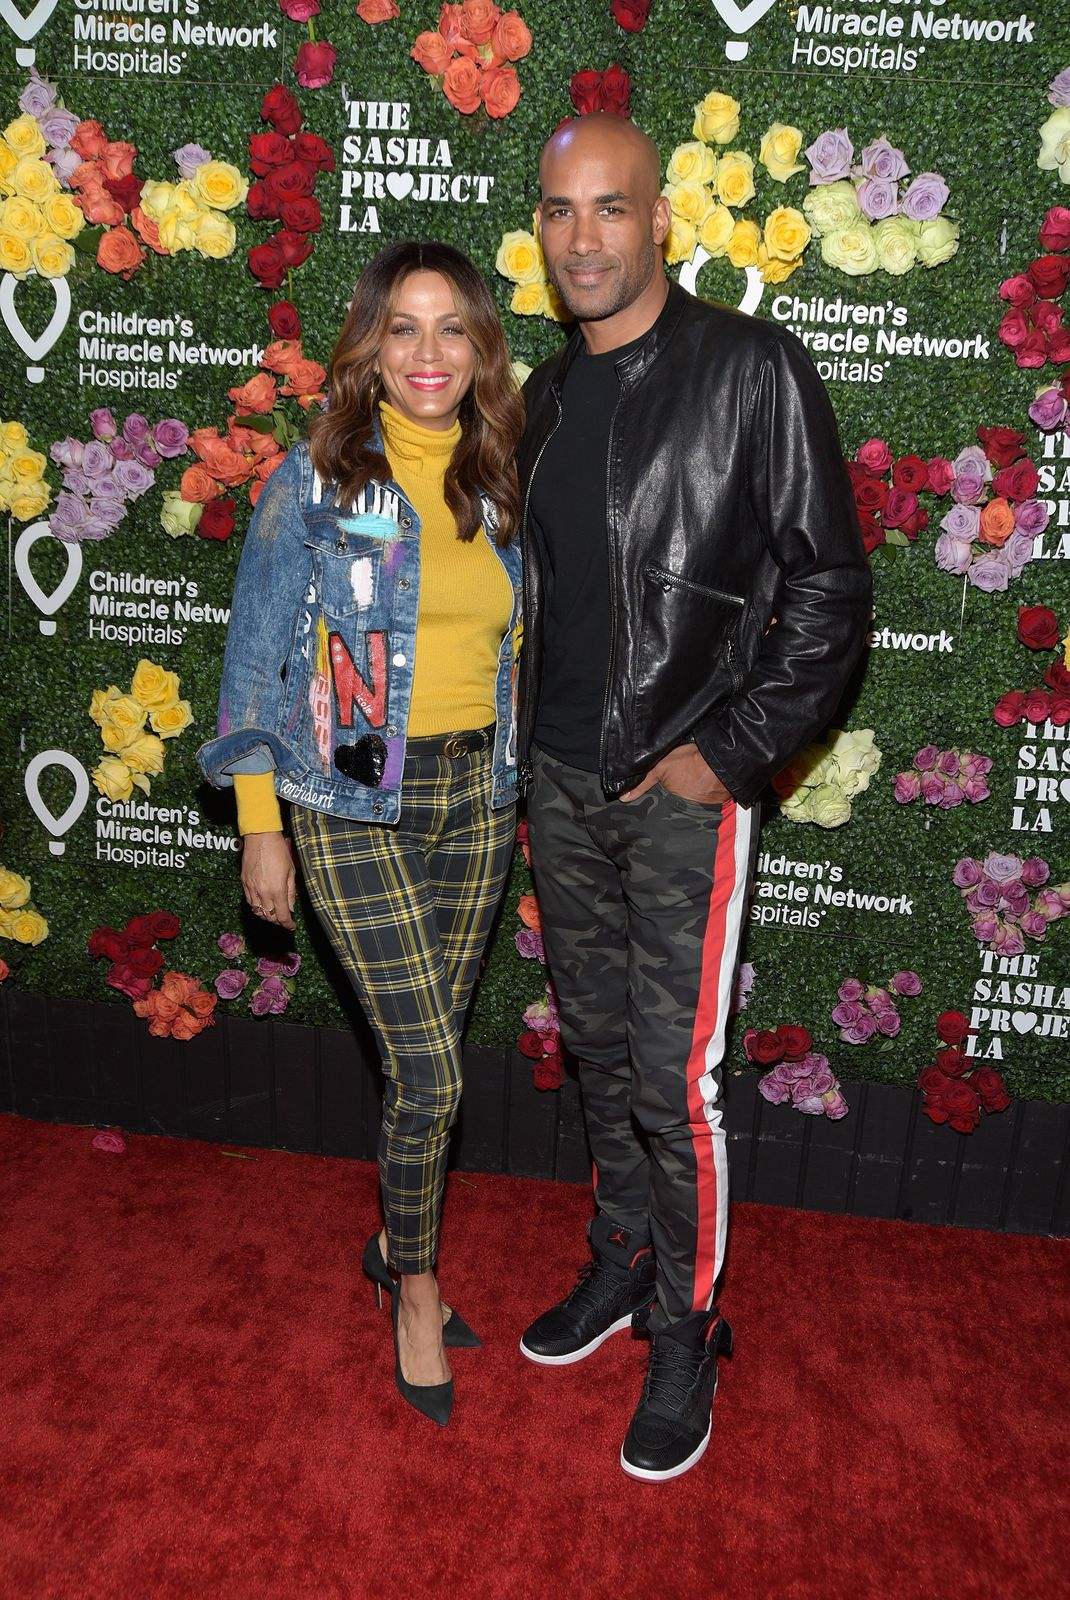 Nicole Ari Parker and Boris Kodjoe attend Rock The Runway presented by Children's Miracle Network Hospitals at Avalon on October 13, 2018 in Hollywood, California. | Photo: Getty Images